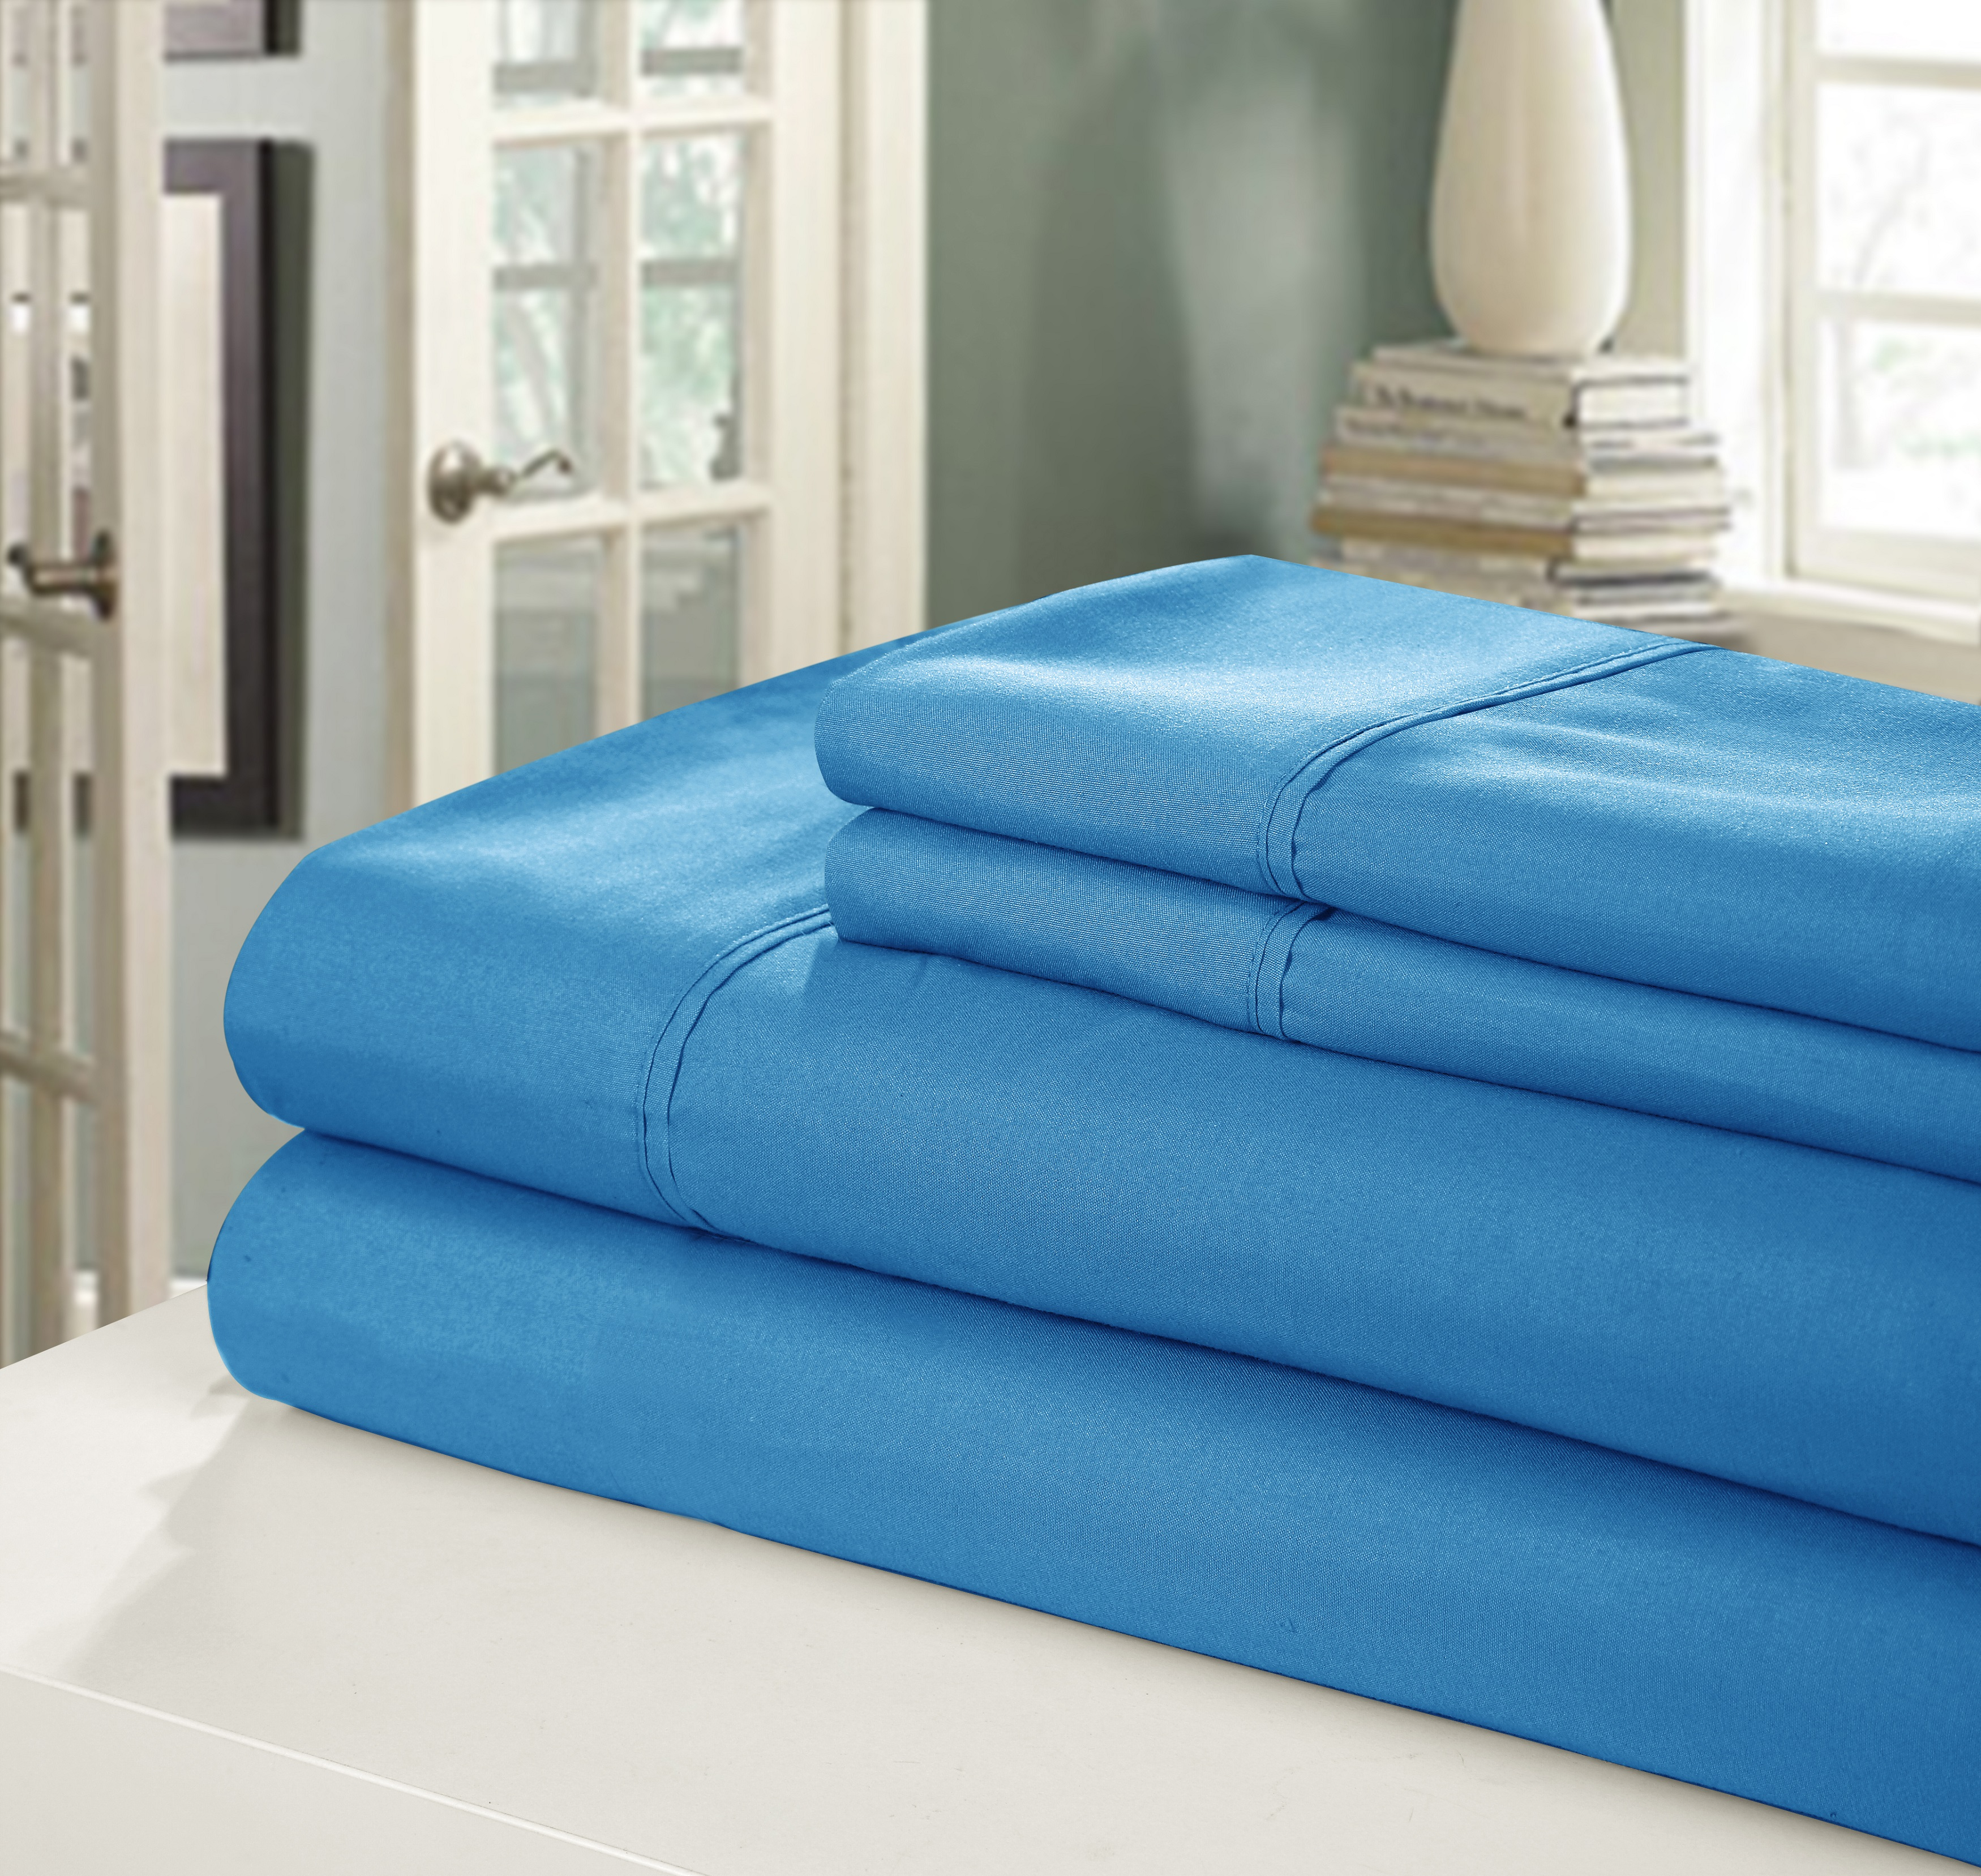 Chic Home NEW!! Chic Home 400 Series Peach Skin Microfiber 4-Piece Sheet Set Ensemble, Full, Blue